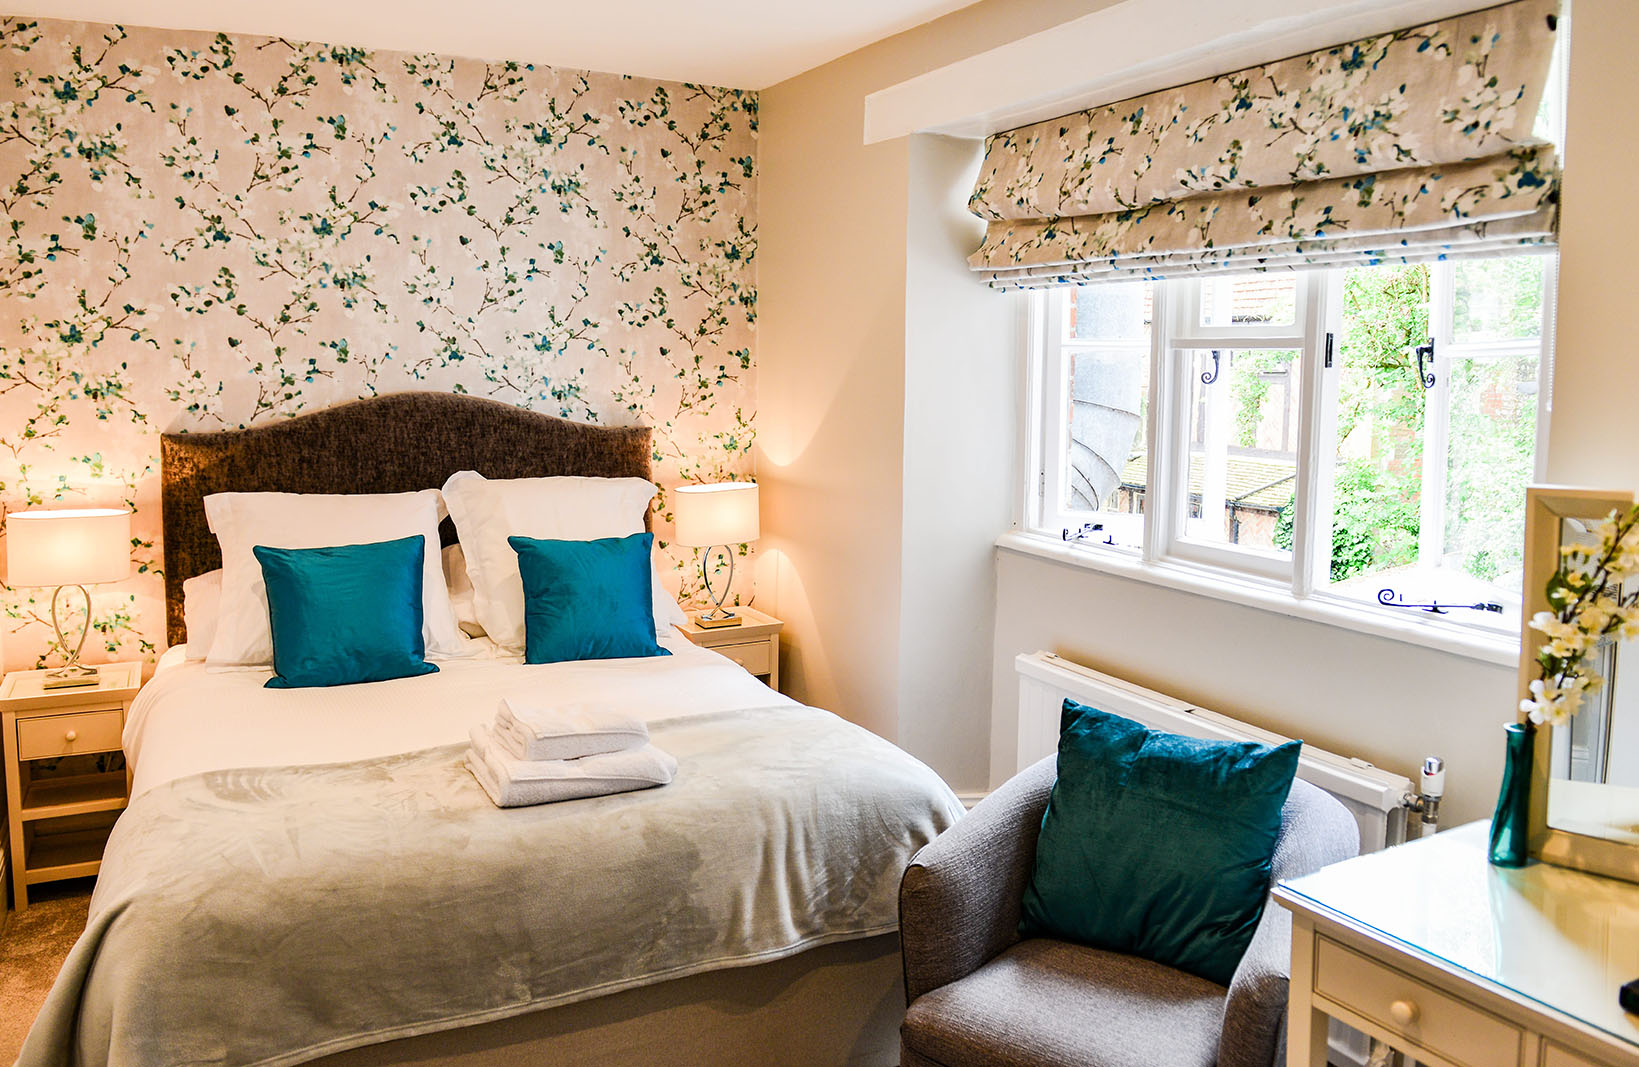 Double bedroom with floral wallpaper - Springwells Guest House Steyning